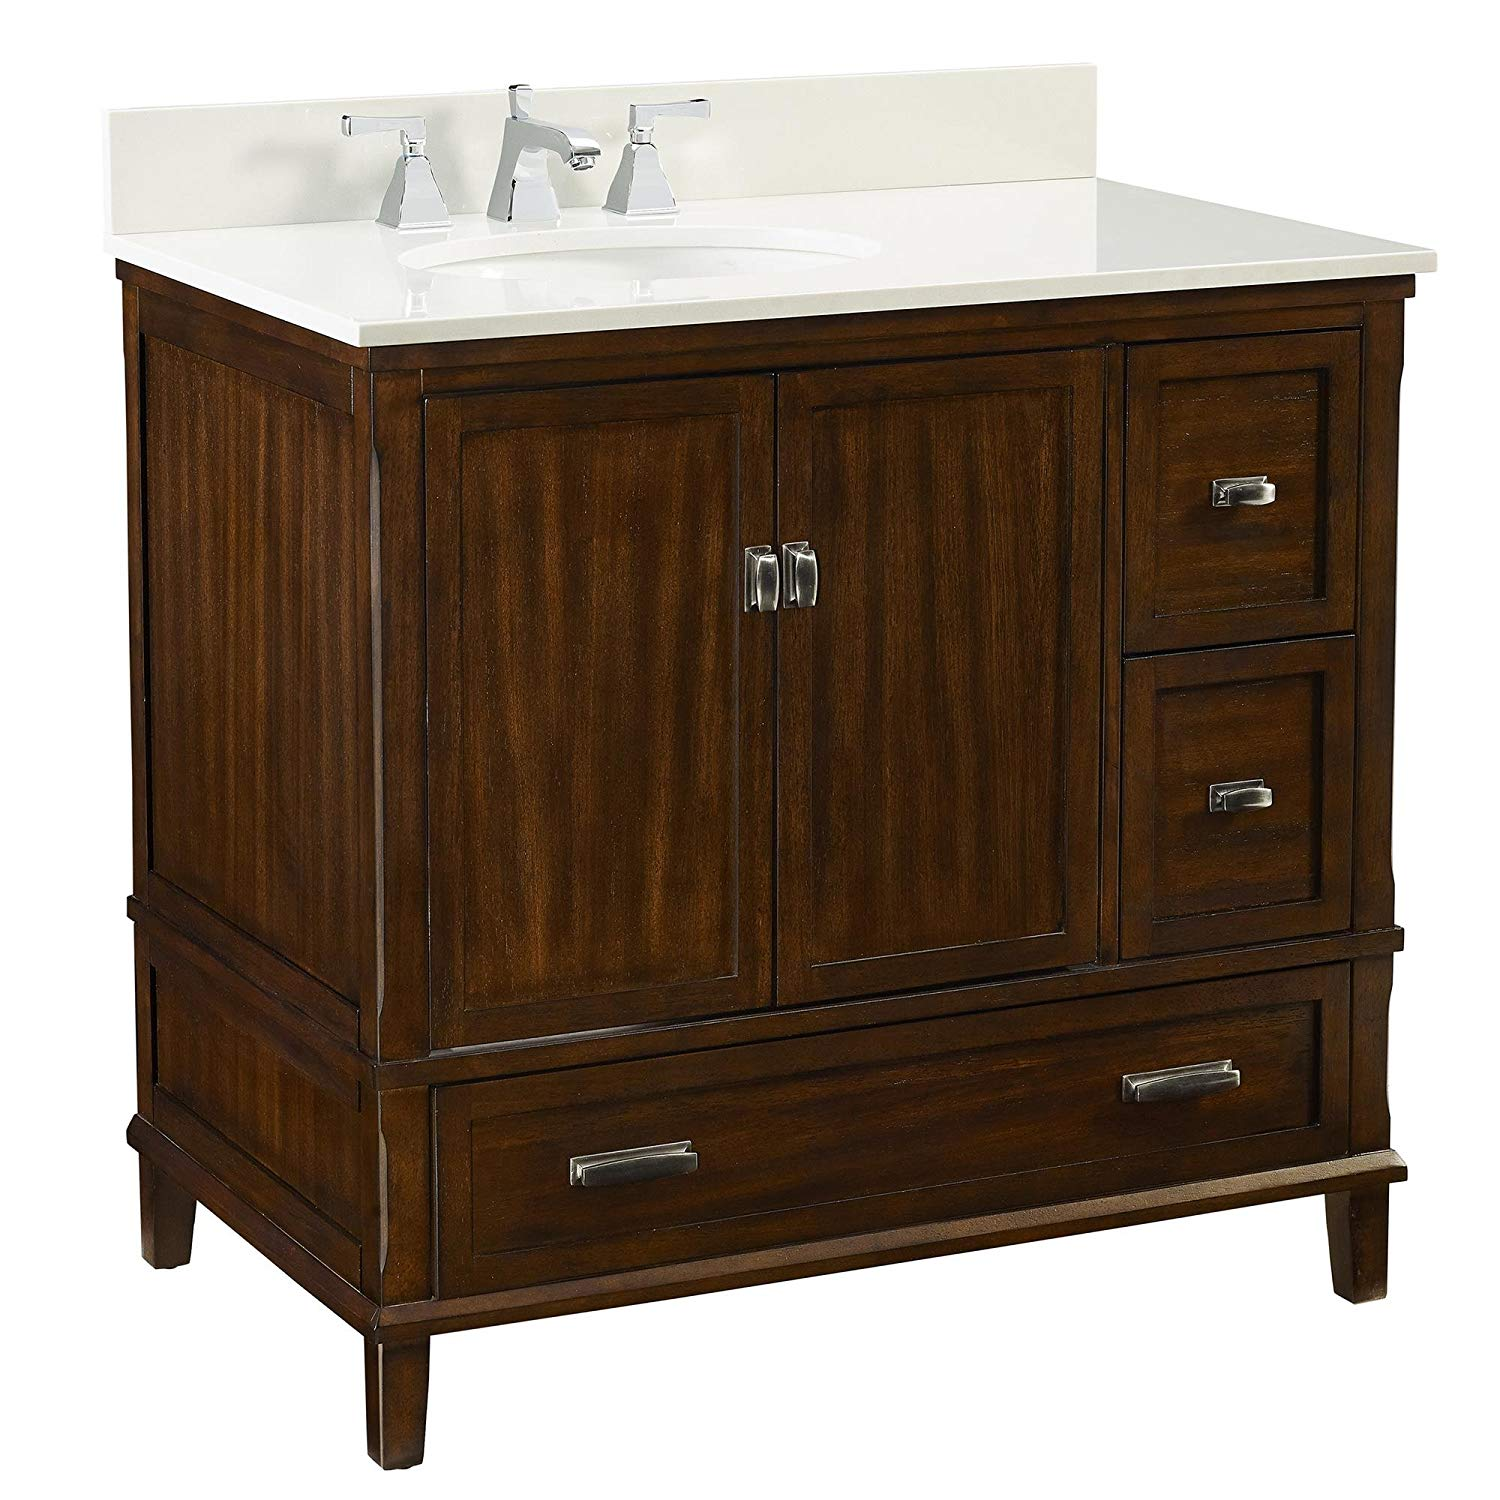 Cheap 36 X 19 Bathroom Vanity, find 36 X 19 Bathroom ...